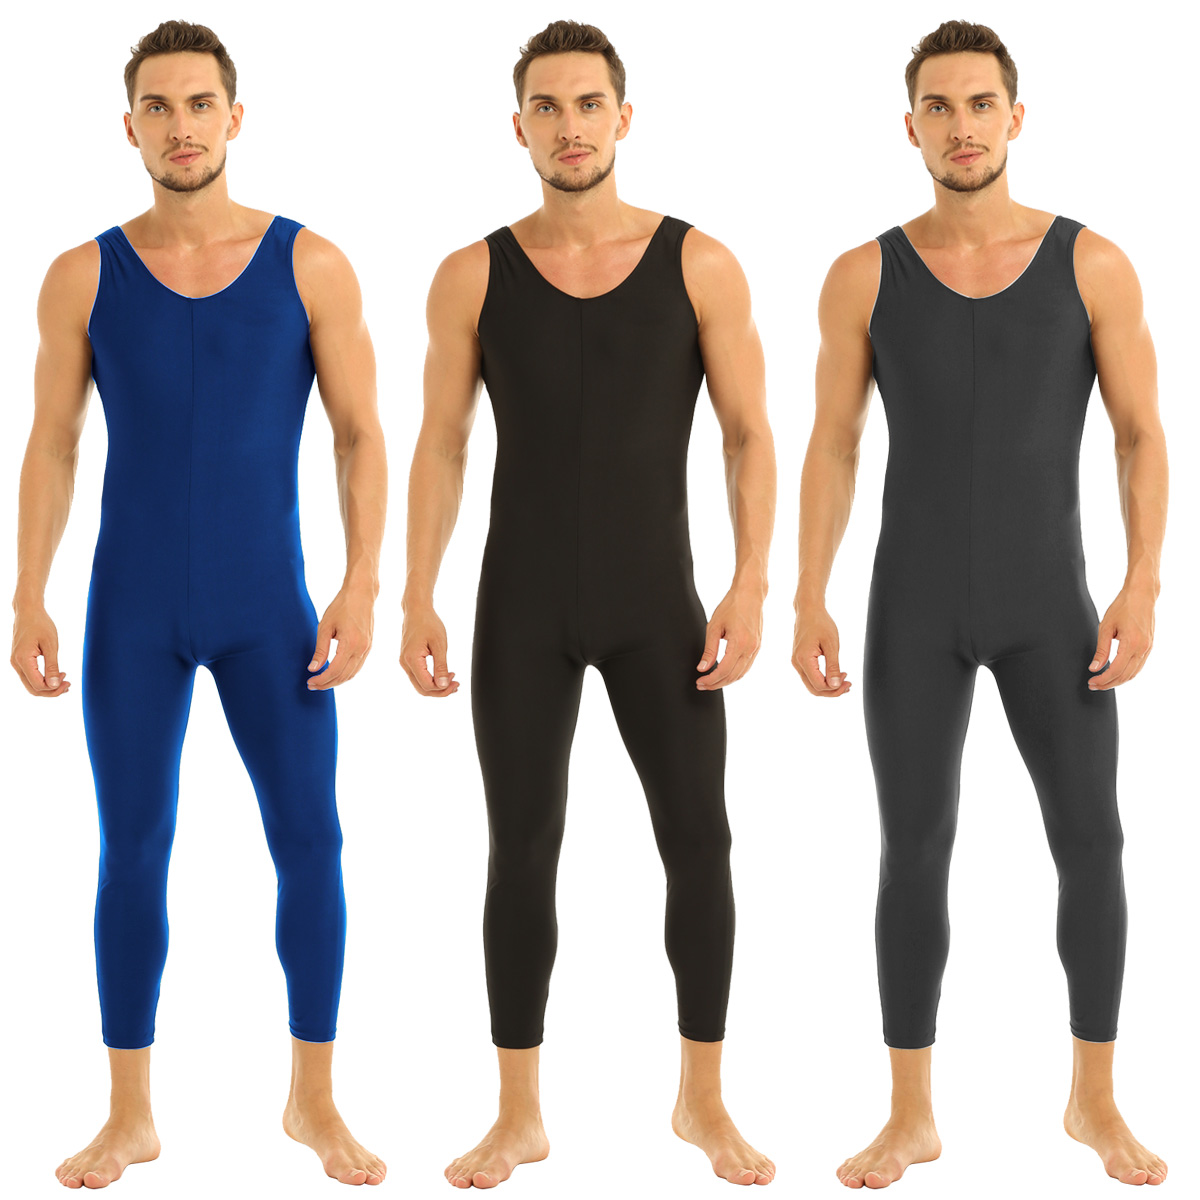 Men Sleeveless Leotard Bodysuit Lycra Tights Leggings for Ballet Dance Vest Teddy Sports Unitard Catsuit Male Dancewear Jumpsuit 13